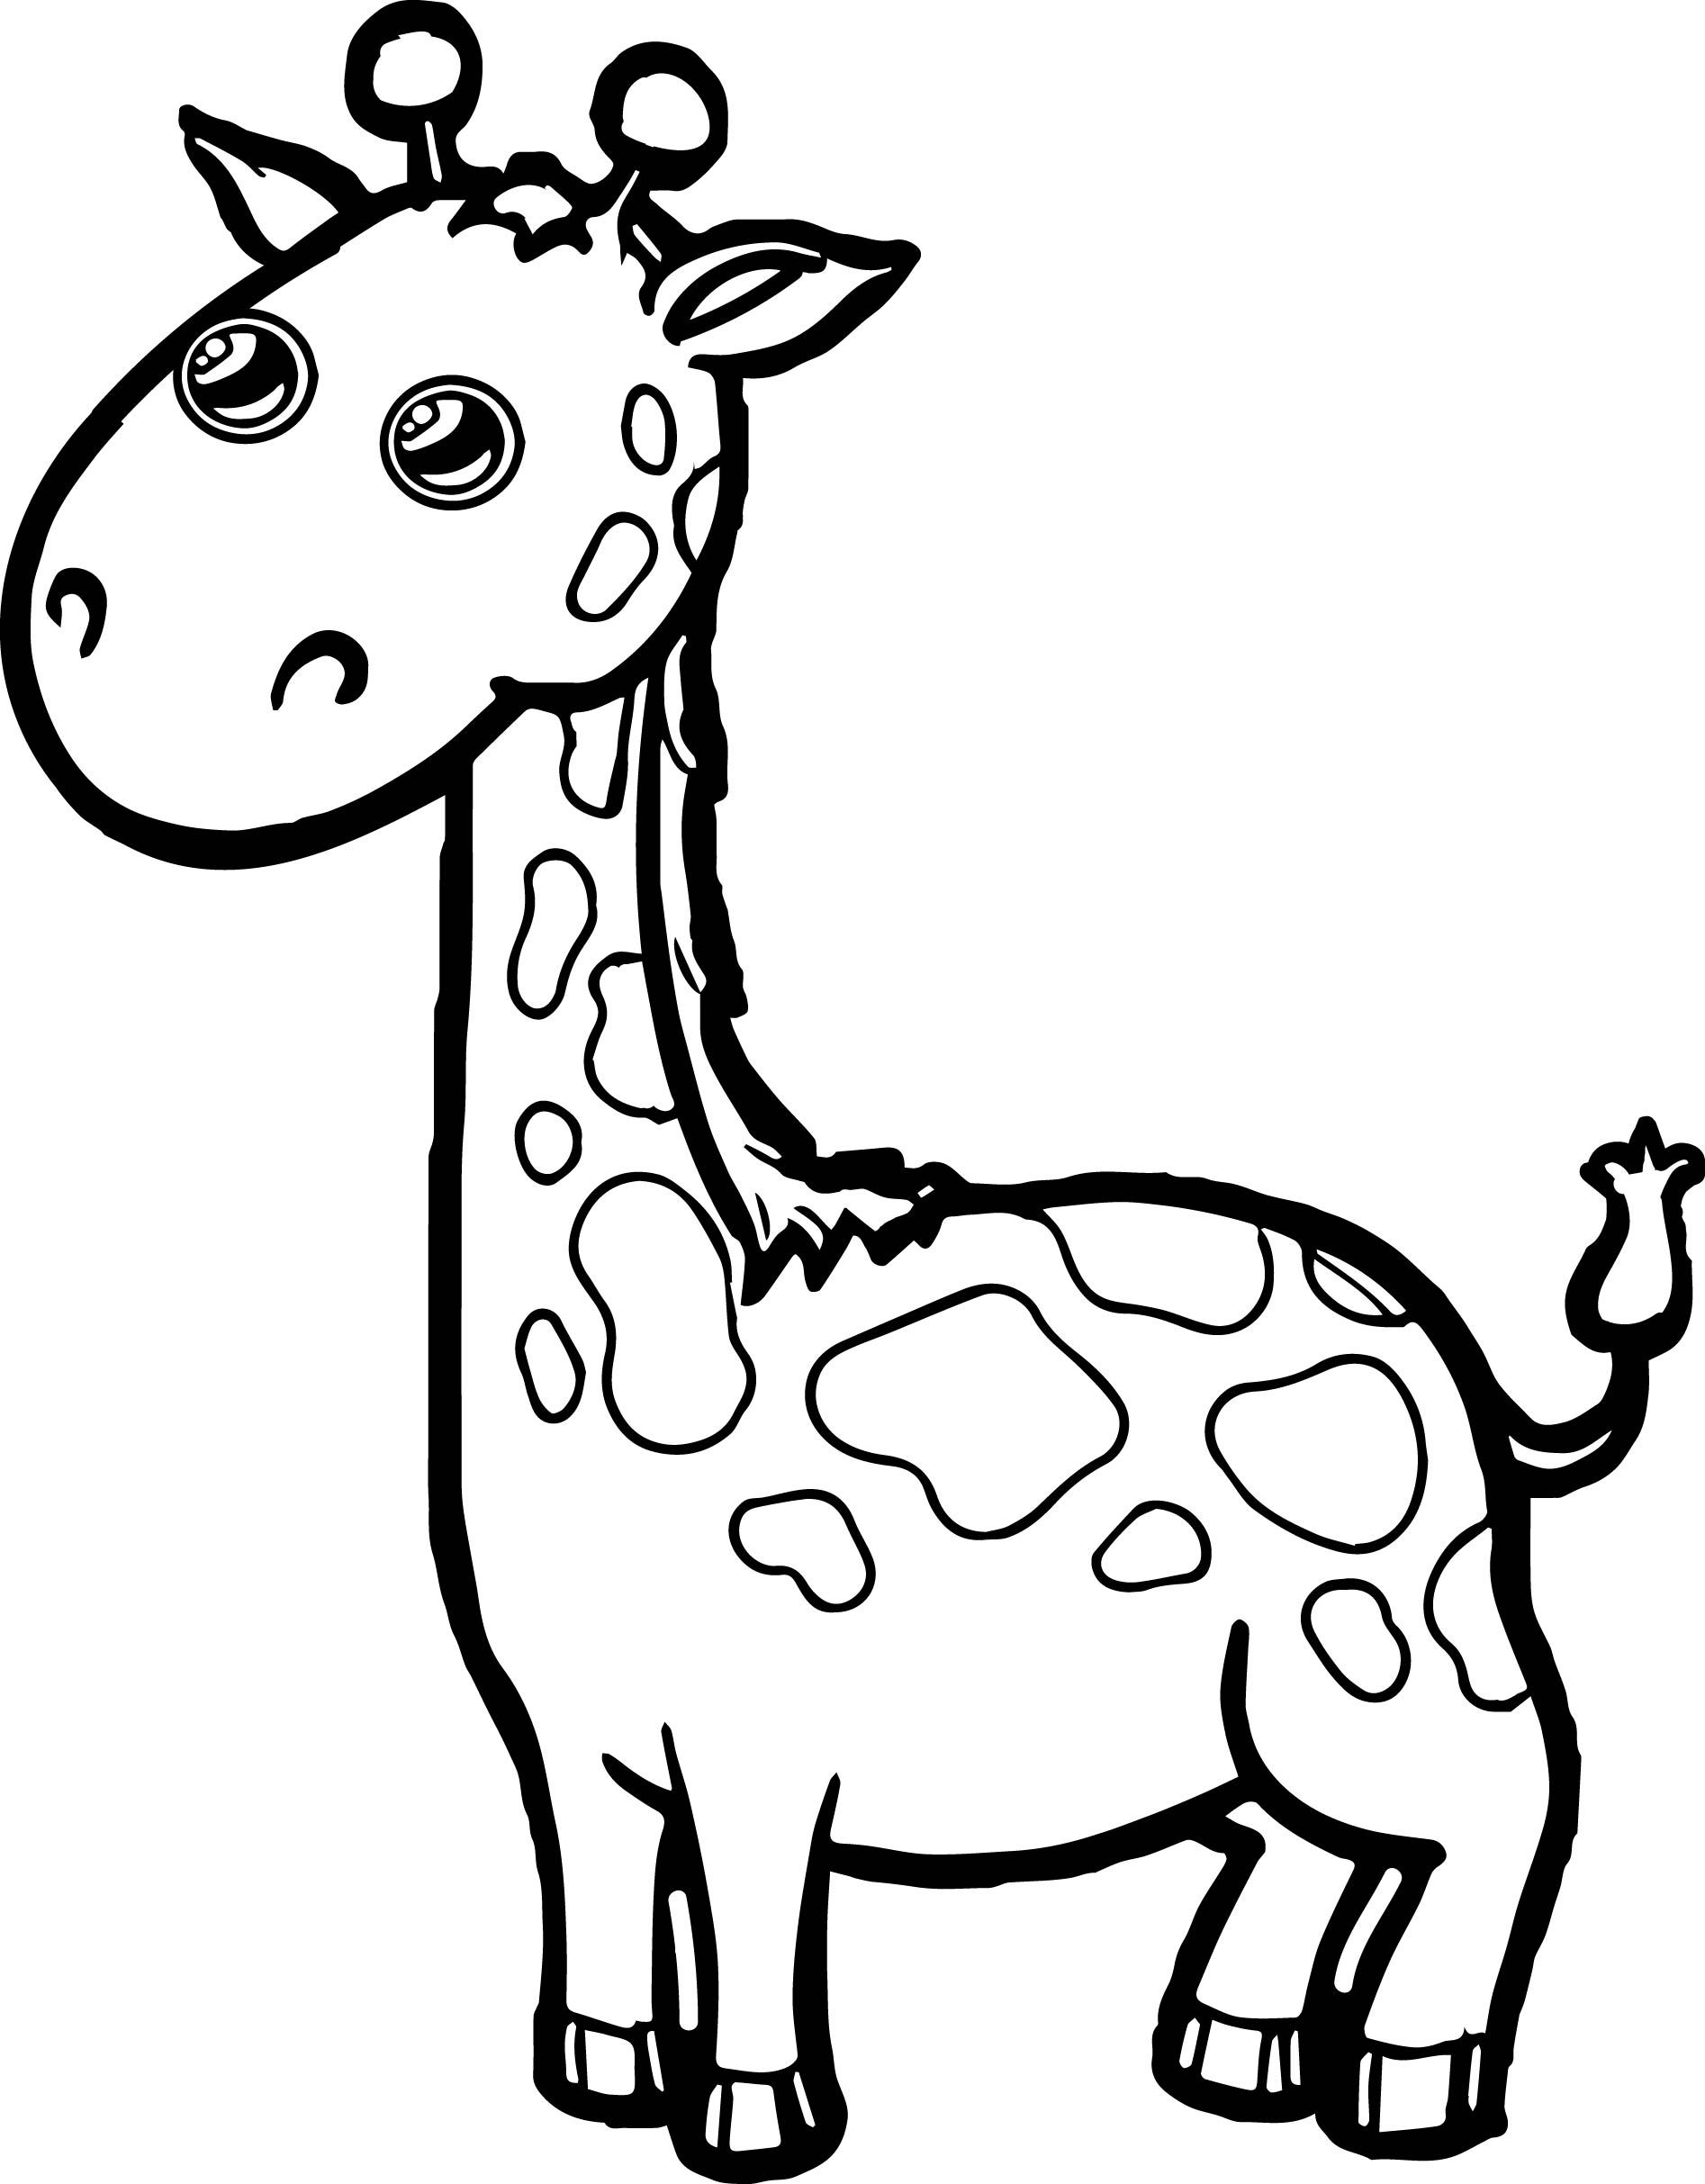 cool Zoo Giraffe Cartoon Coloring Page | Coloring pages ...